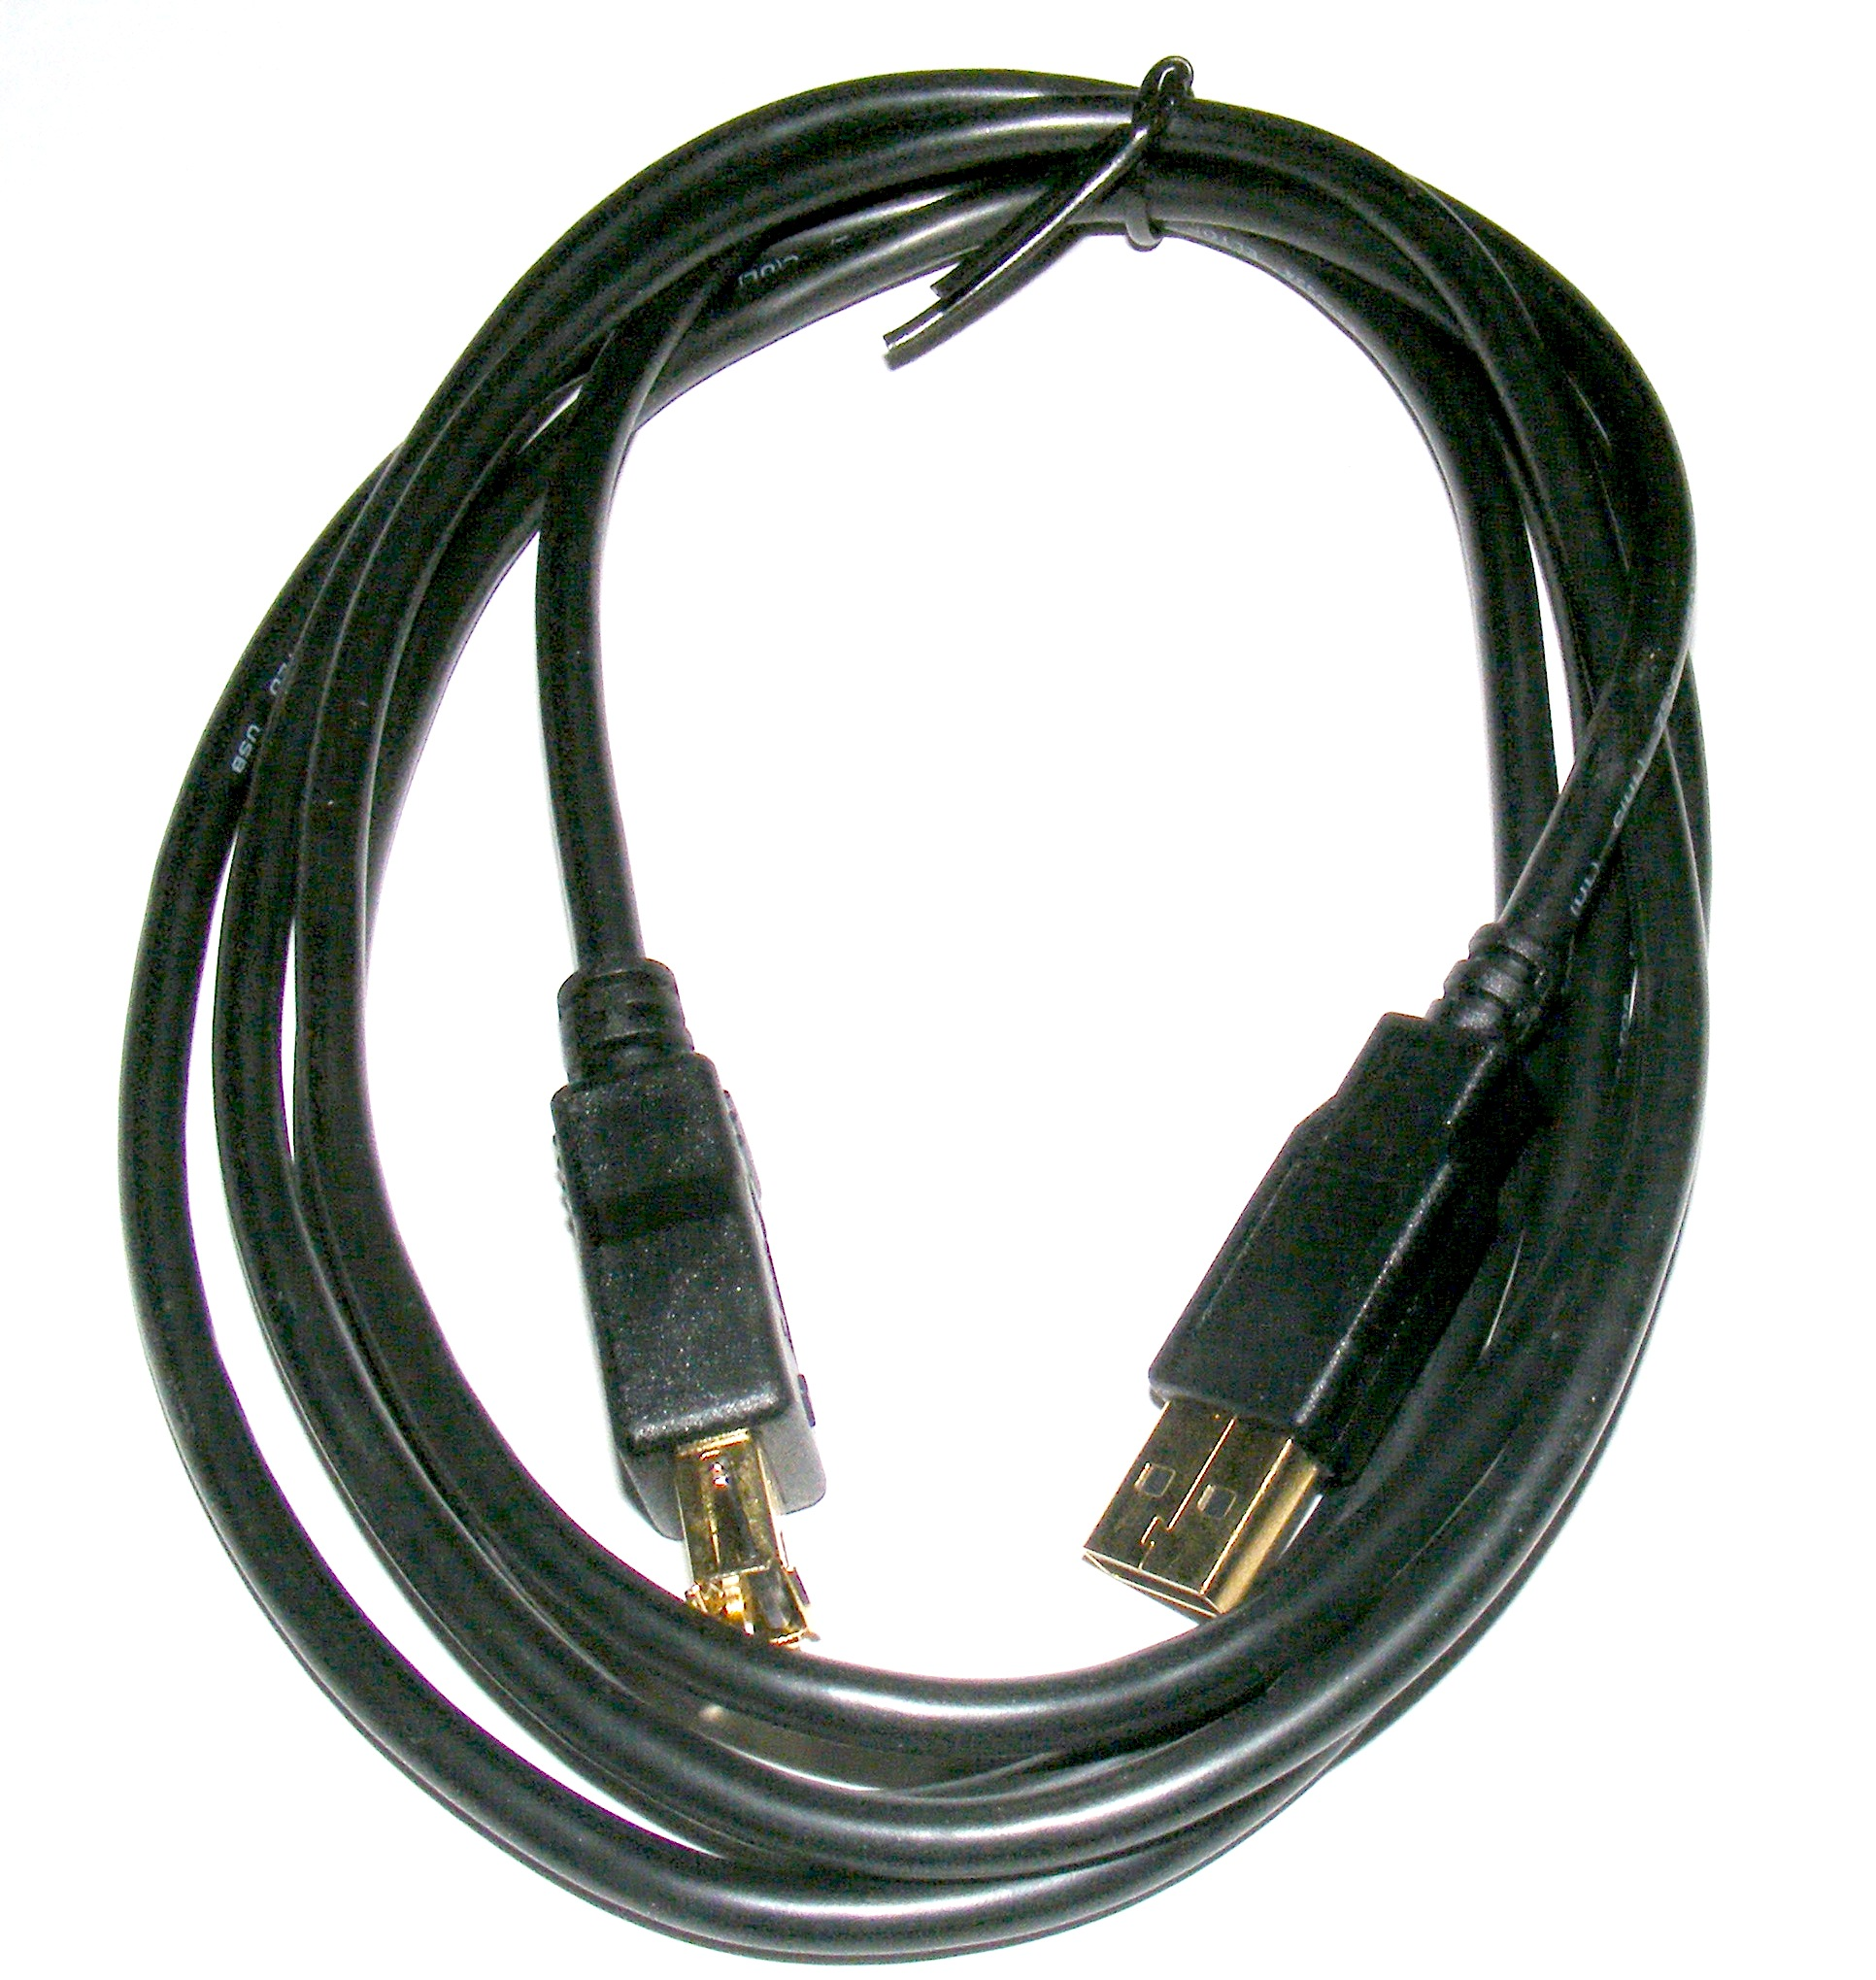 hight resolution of file usb extension cable jpg